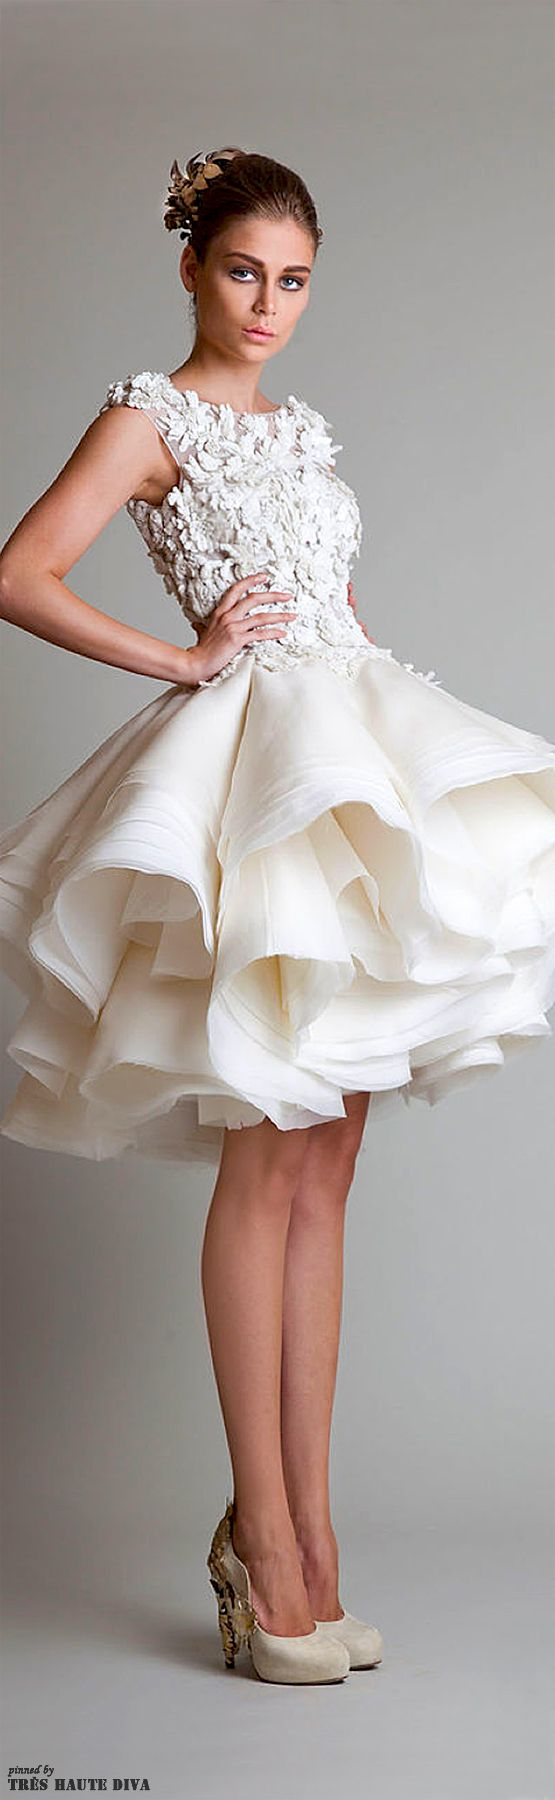 The dress a collection of ideas to try about weddings wedding